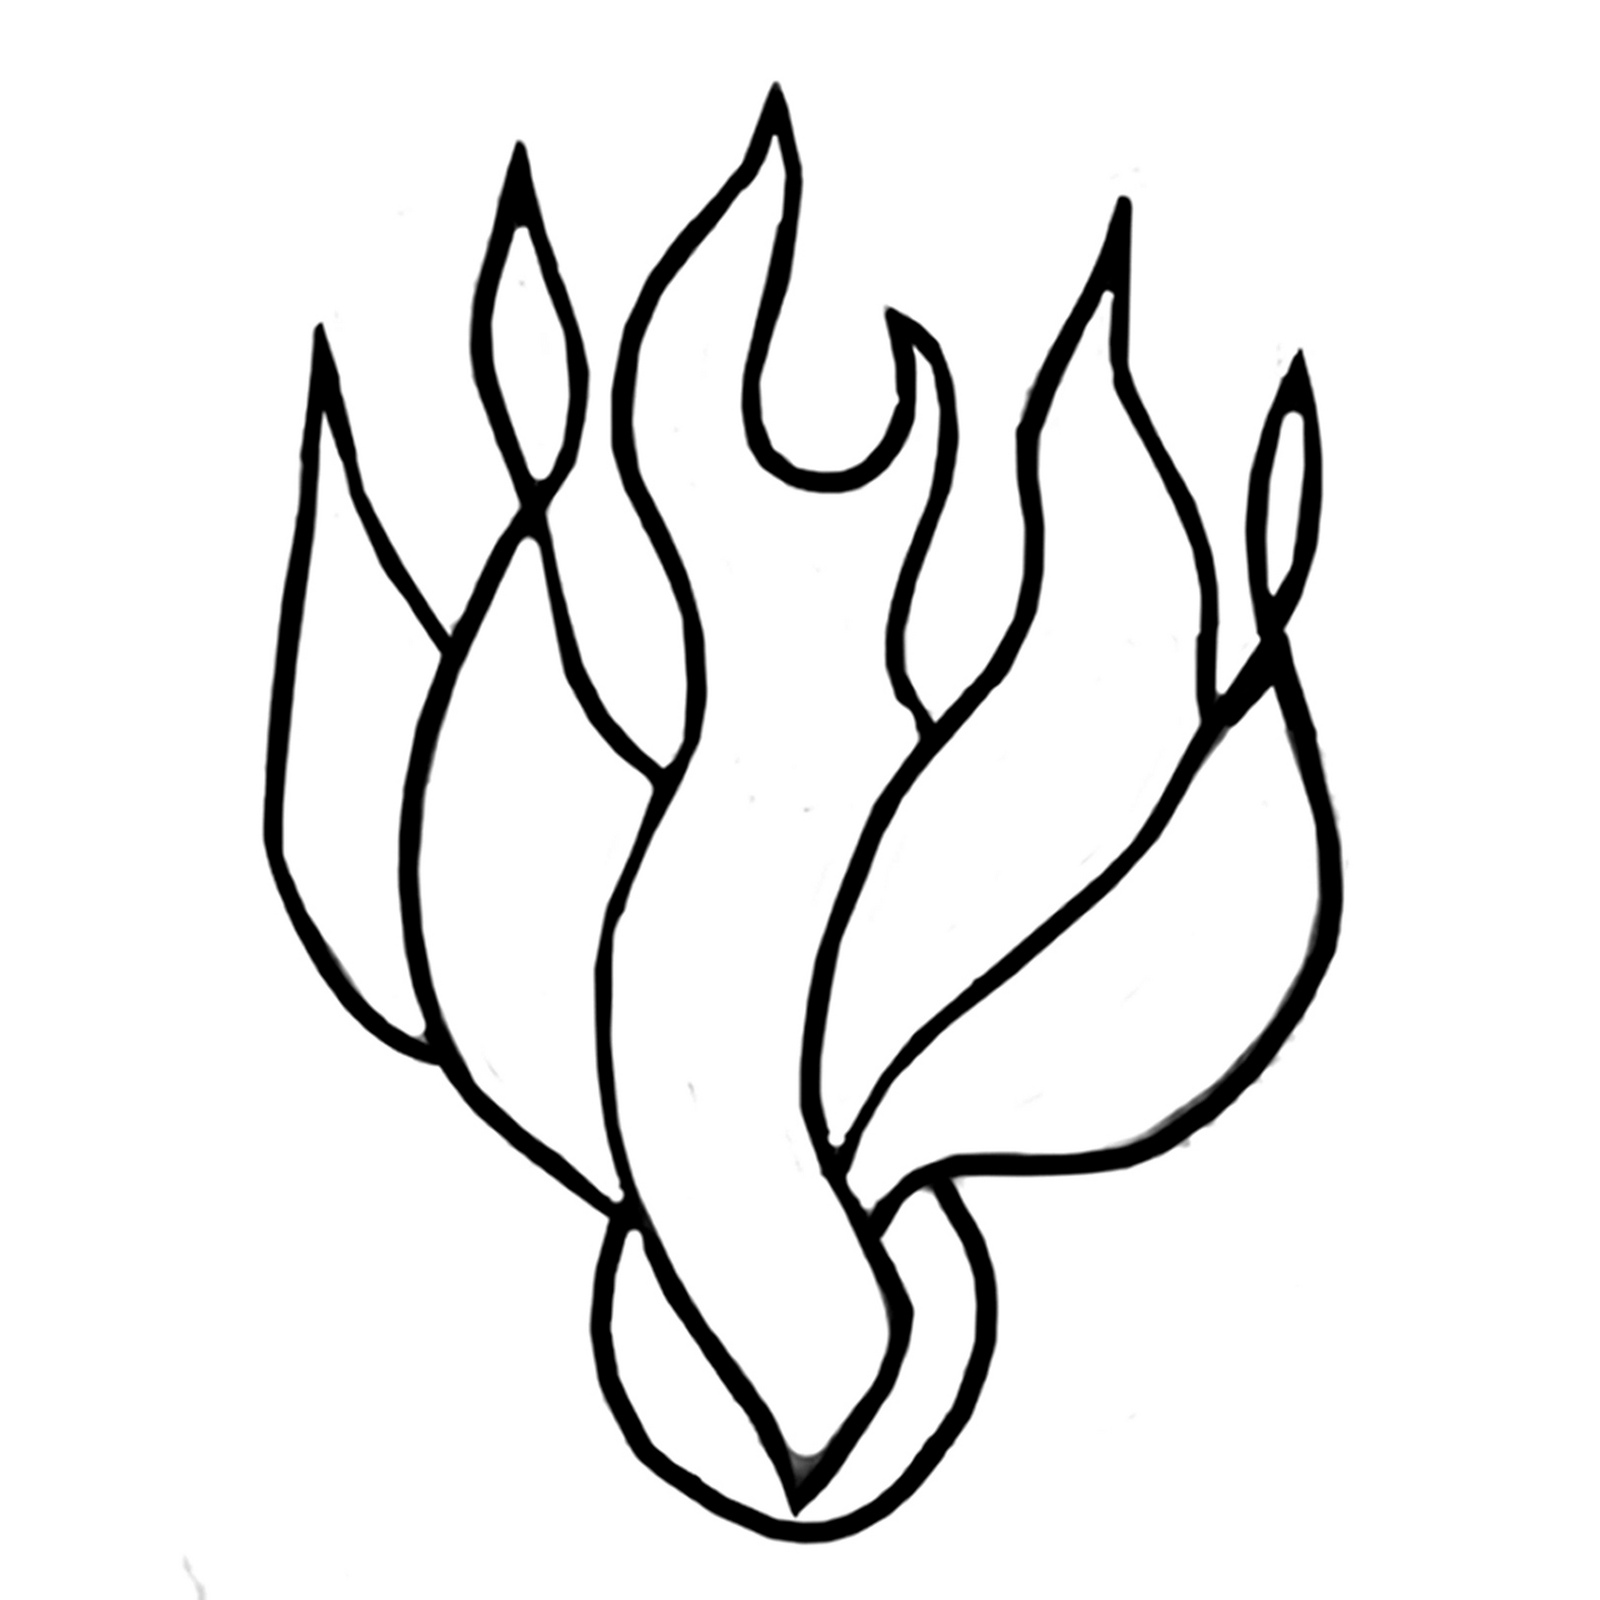 holy spirit coloring page gifts of the holy spirit coloring pages at getcolorings coloring page spirit holy